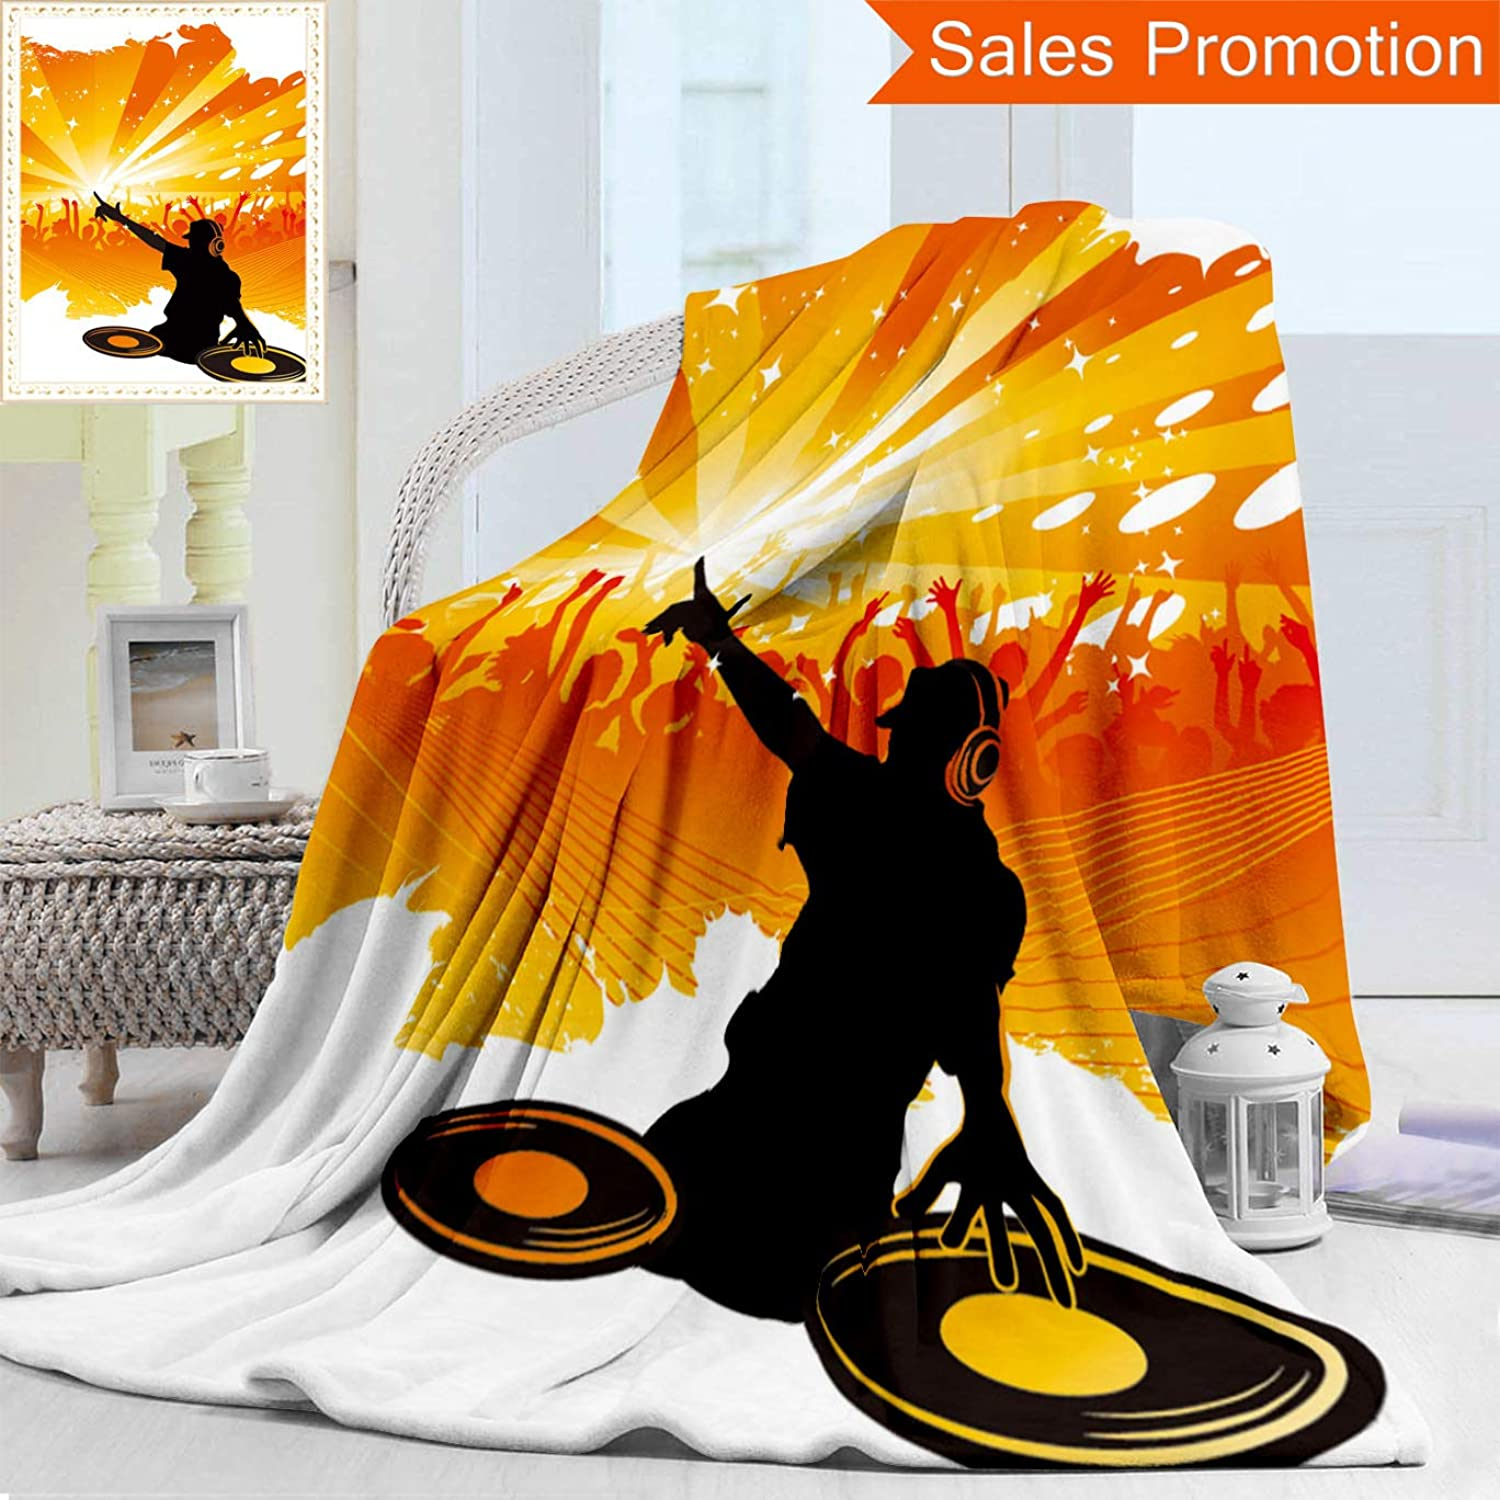 Opposo Unique Double Sides 3D Print Flannel Blanket Dj Cozy Plush Supersoft Blankets for Couch Bed, Throw Blanket 50  x 70